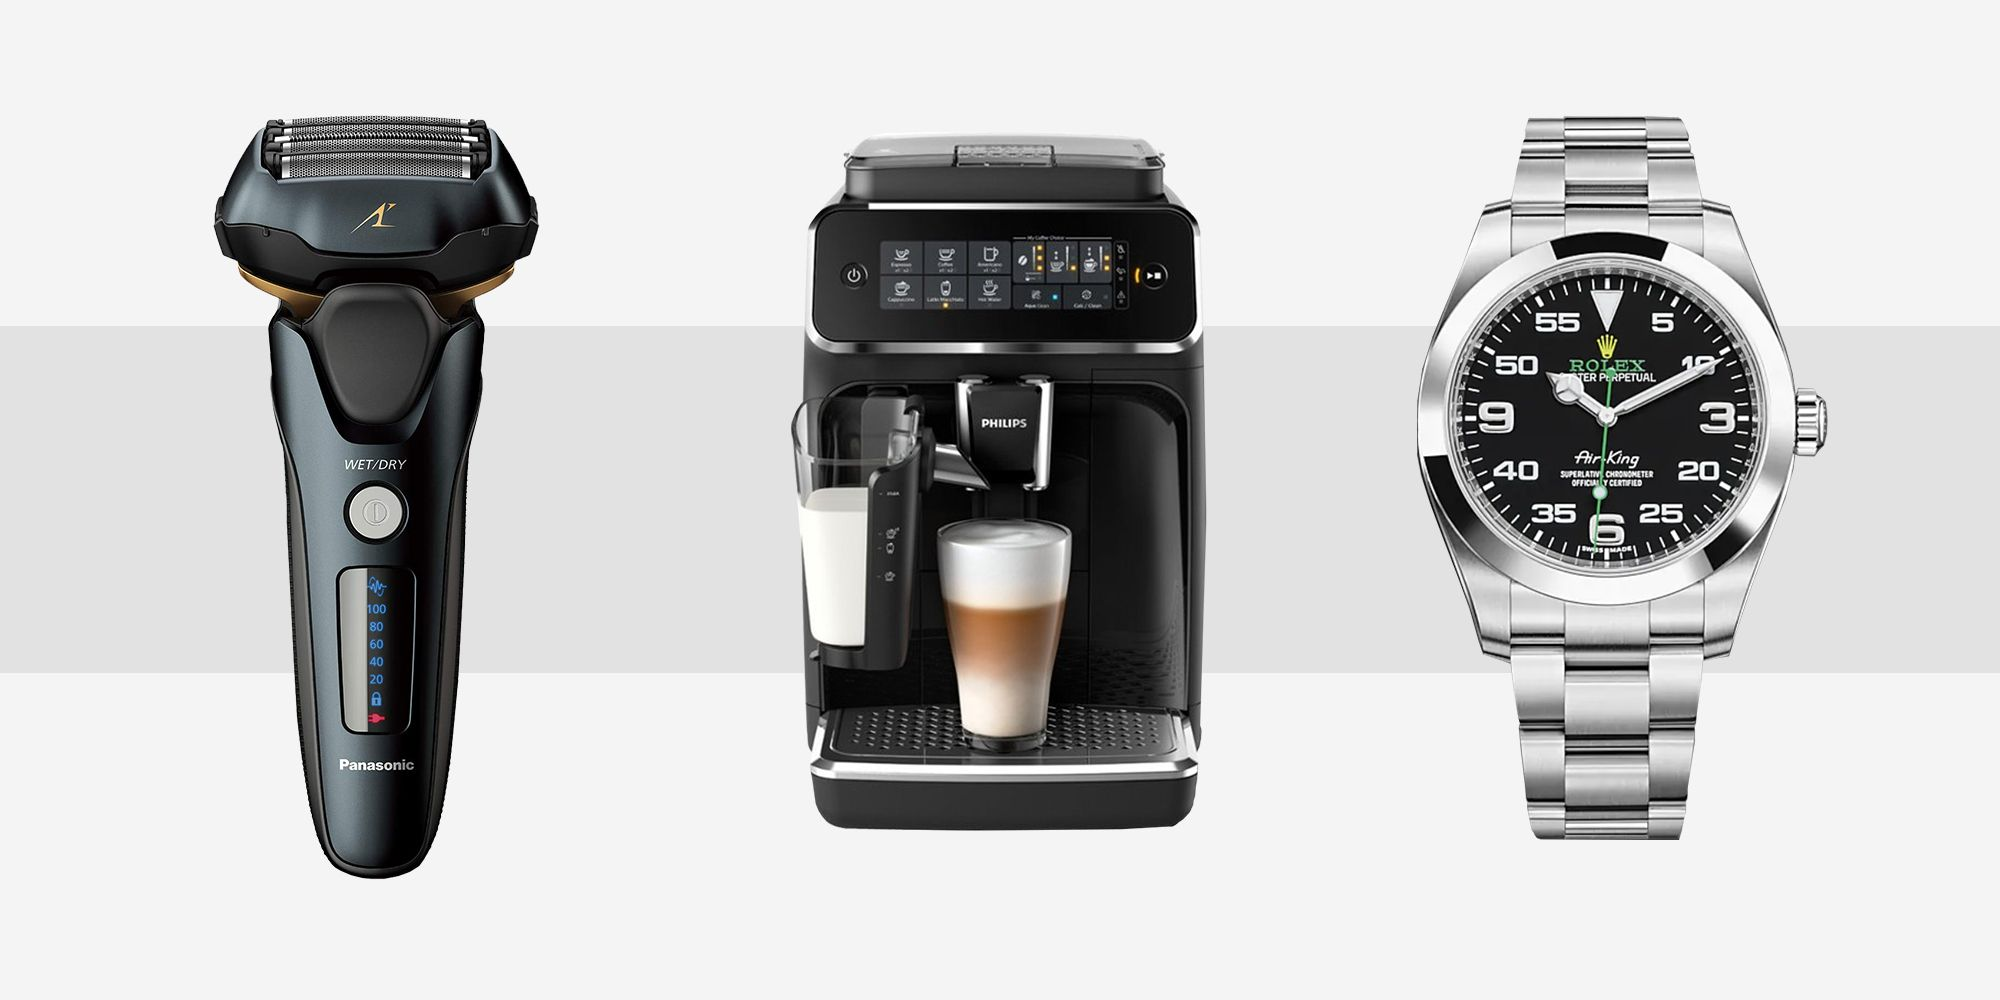 46 Stylish Gifts For Men 2020 Best Gift Ideas For Men Who Have Everything